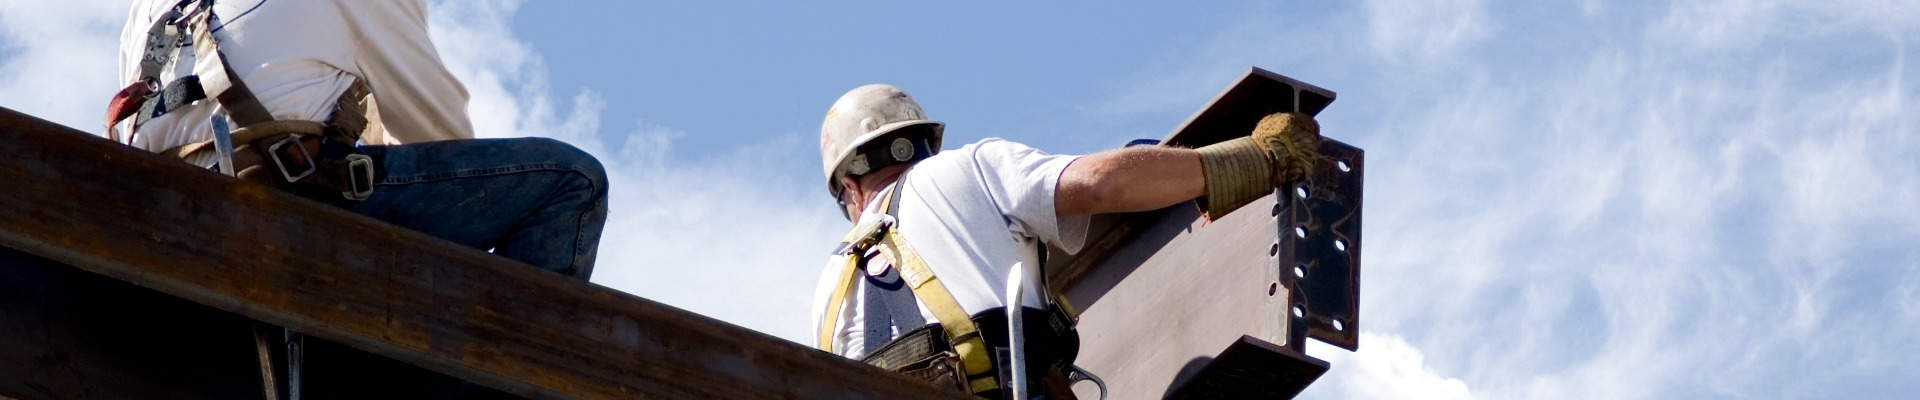 Hero Image for MOL Approved Working at Heights Training